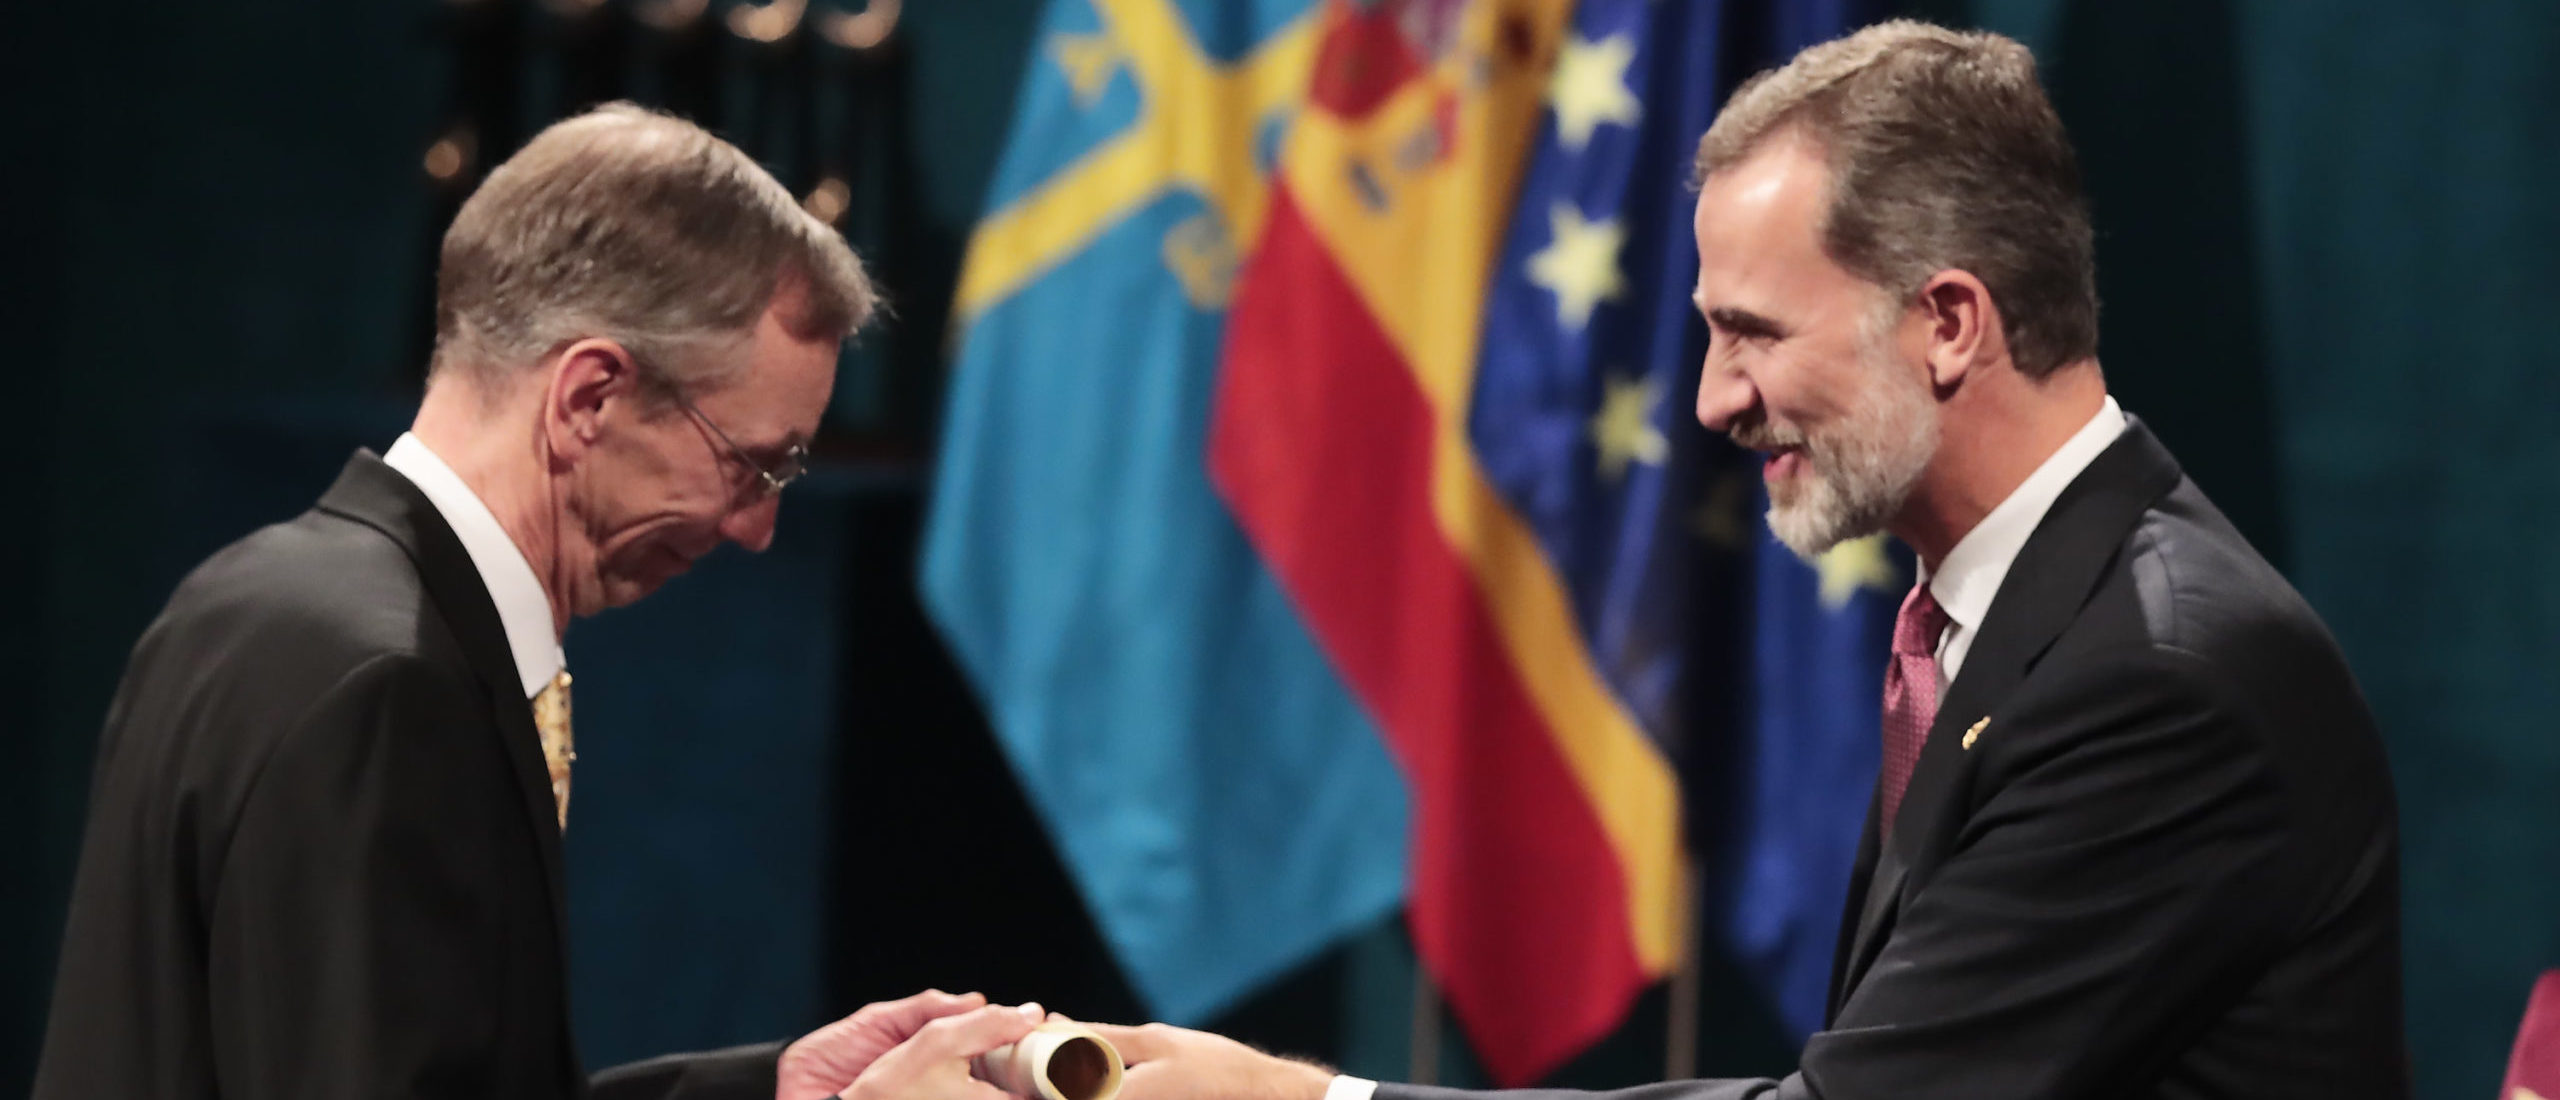 Svante Paabo receives the Princess of Asturias Award for Technical & Scientific Research 2018 from King Felipe VI of Spain on October 19, 2018 in Oviedo, Spain. (Photo by Carlos Alvarez/Getty Images)